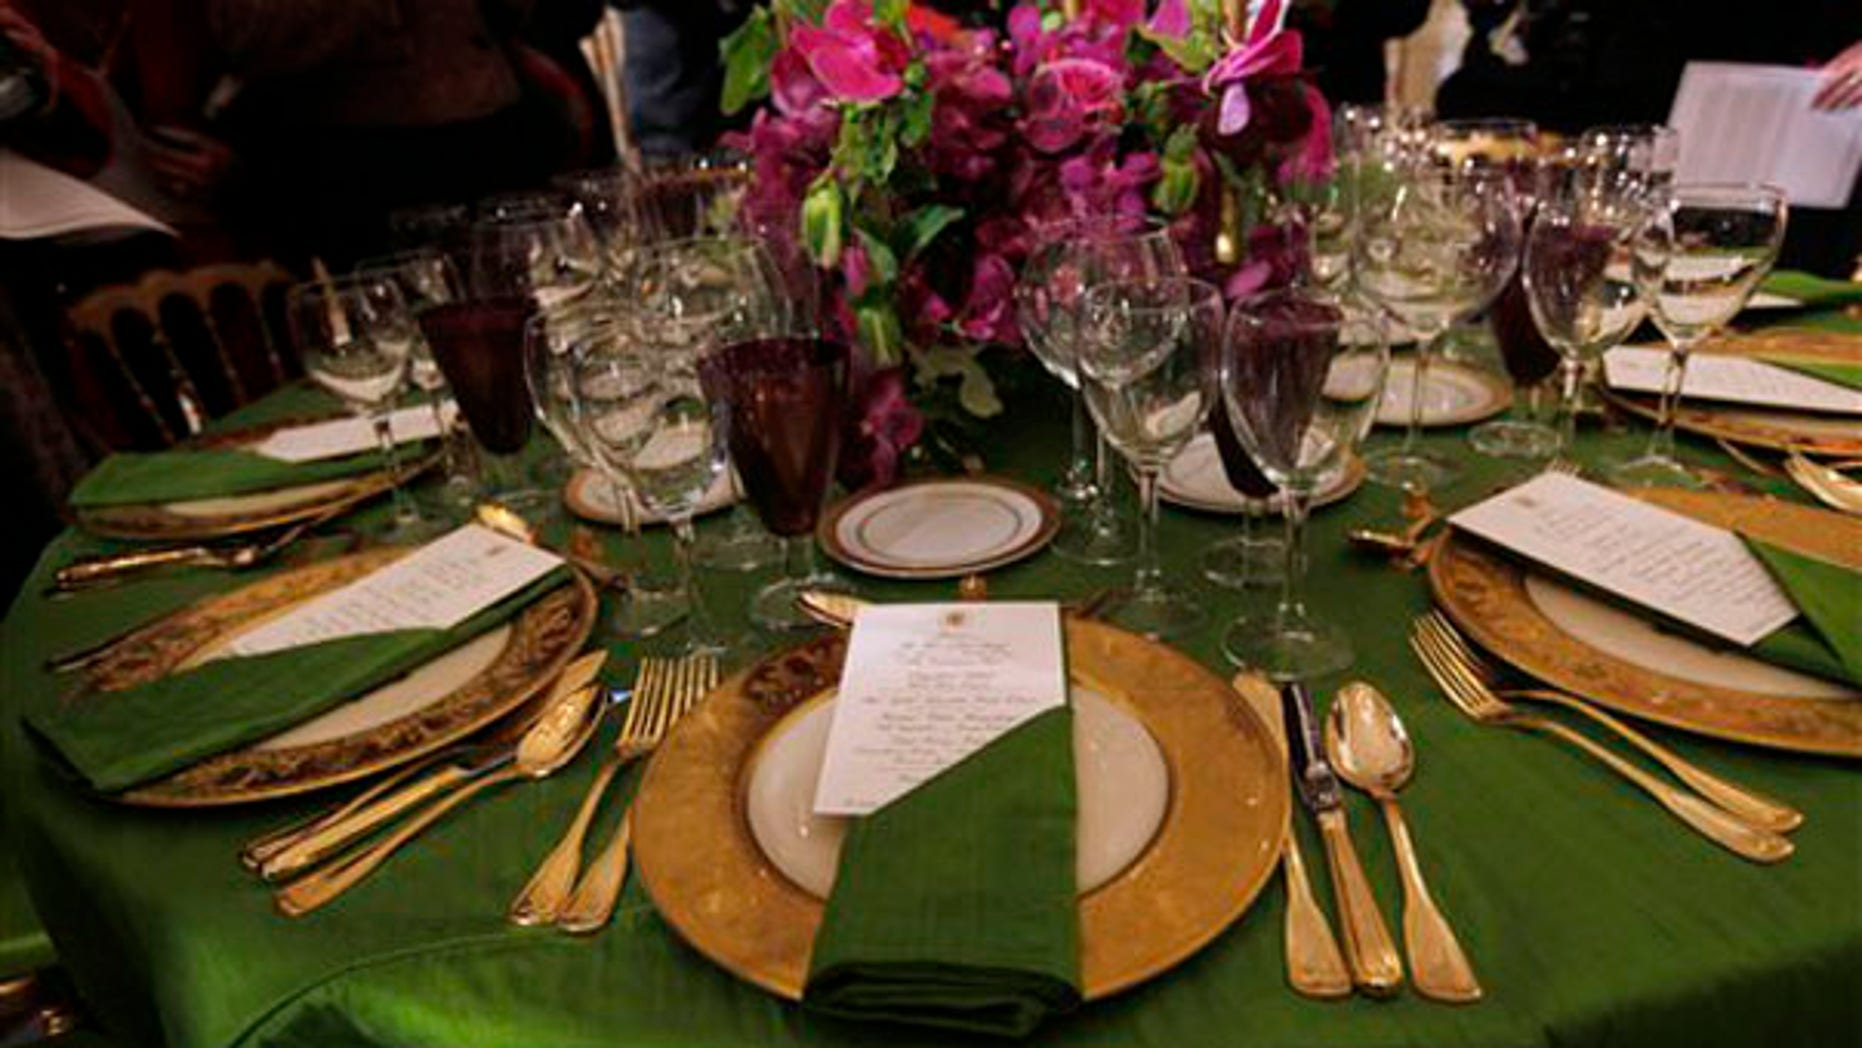 Tuesday: A sample display of a table setting at the state dinner for India Prime Minister Manmohan Singh at the White House. (AP Photo)